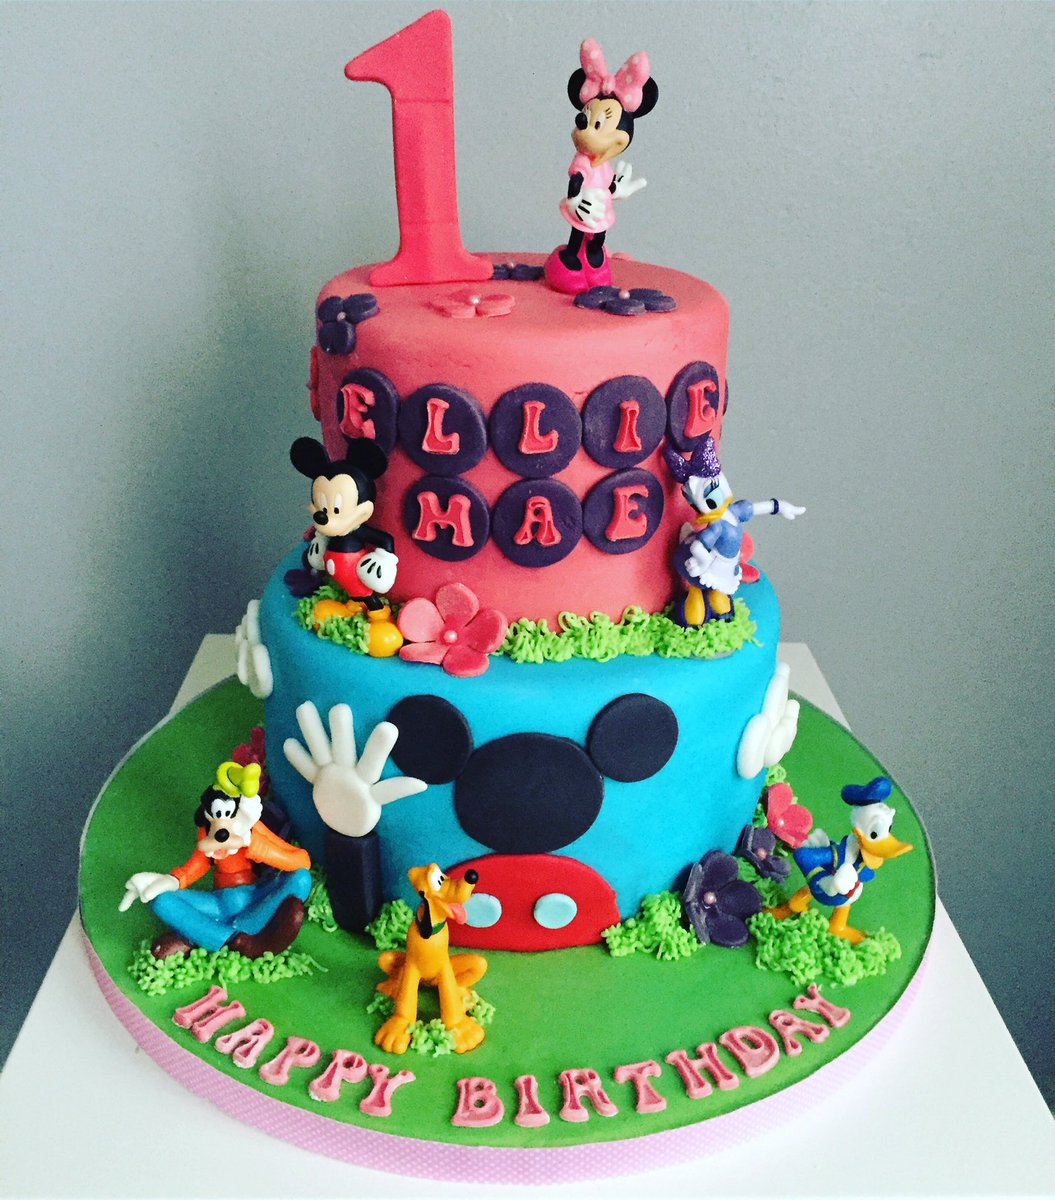 Adams Bakerycakes on Twitter Mickey Mouse clubhouse cake made to